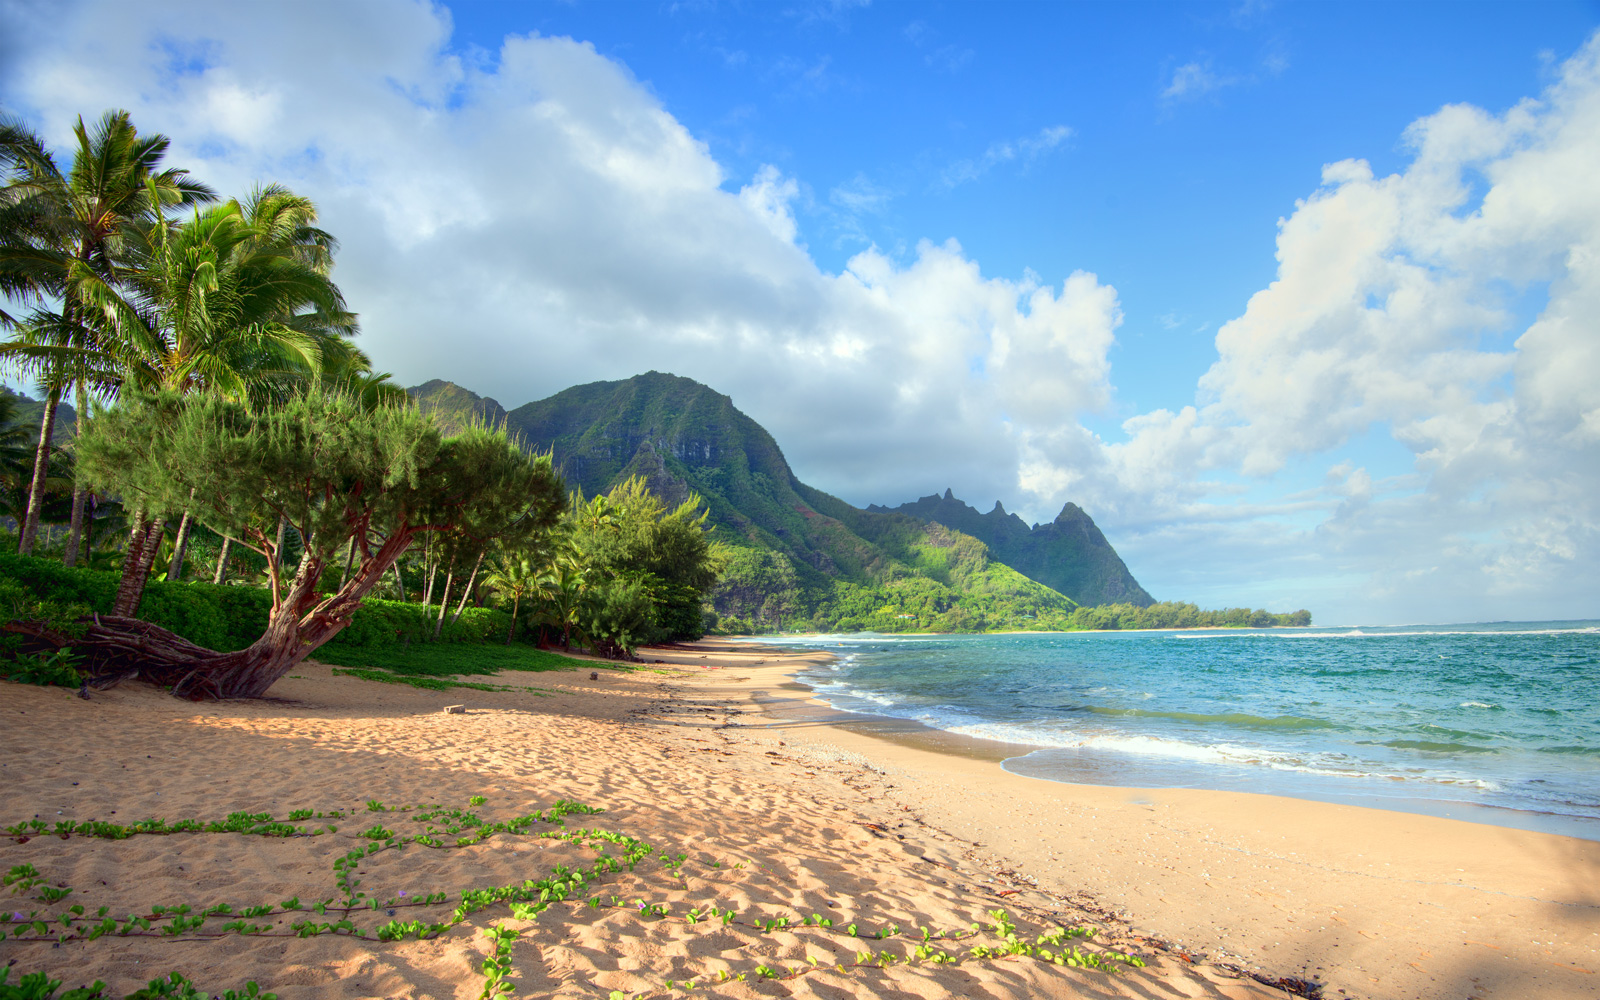 The north shore in Haena in Kauai.